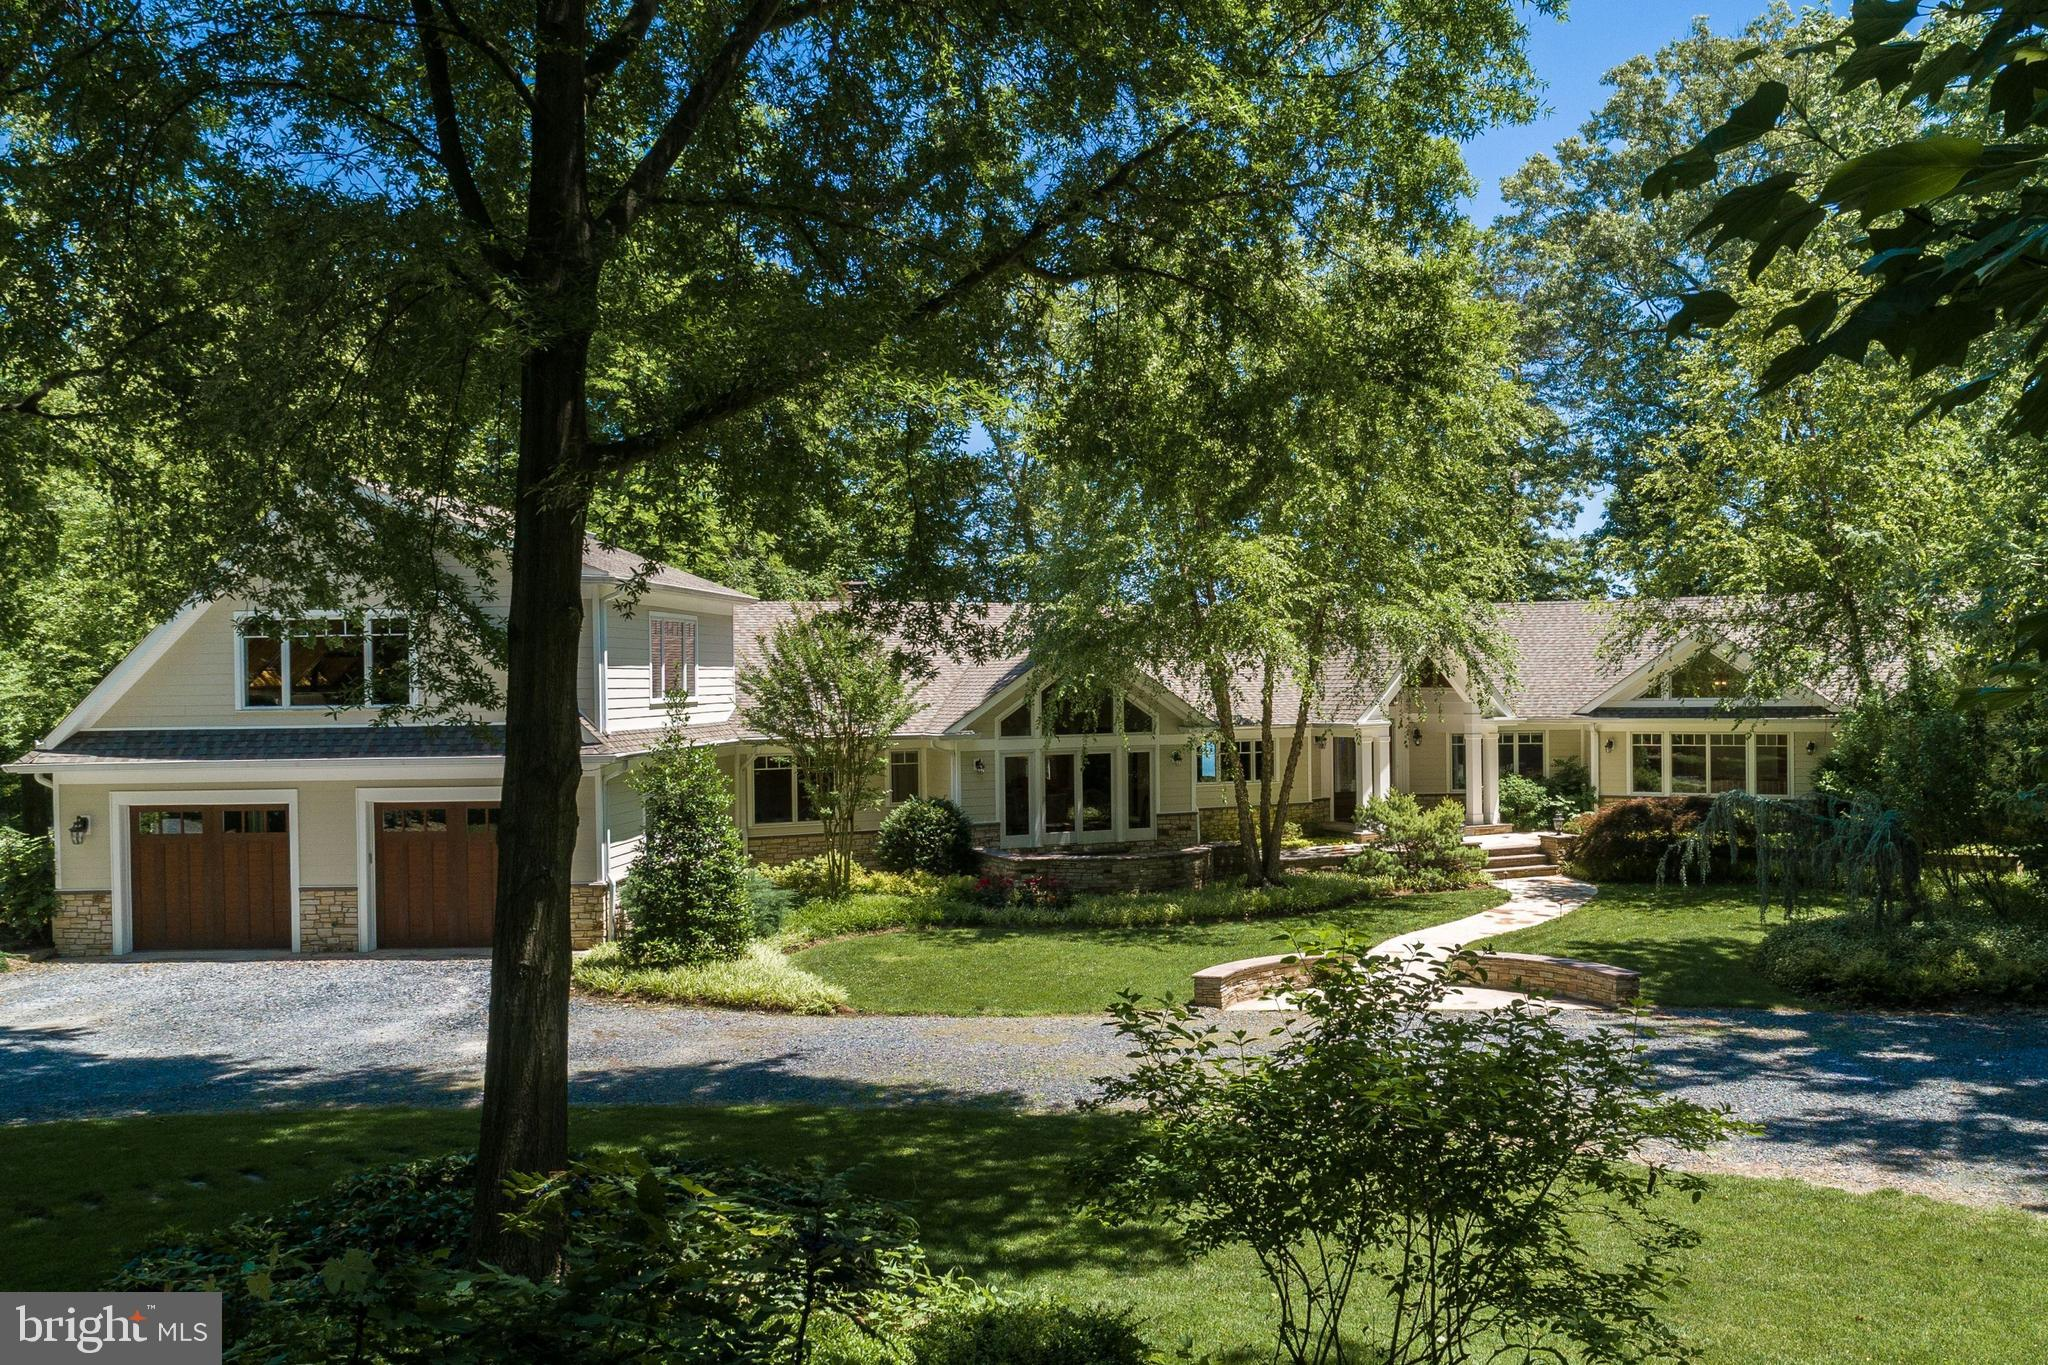 111 WYE HOUSE LANE, QUEENSTOWN, MD 21658